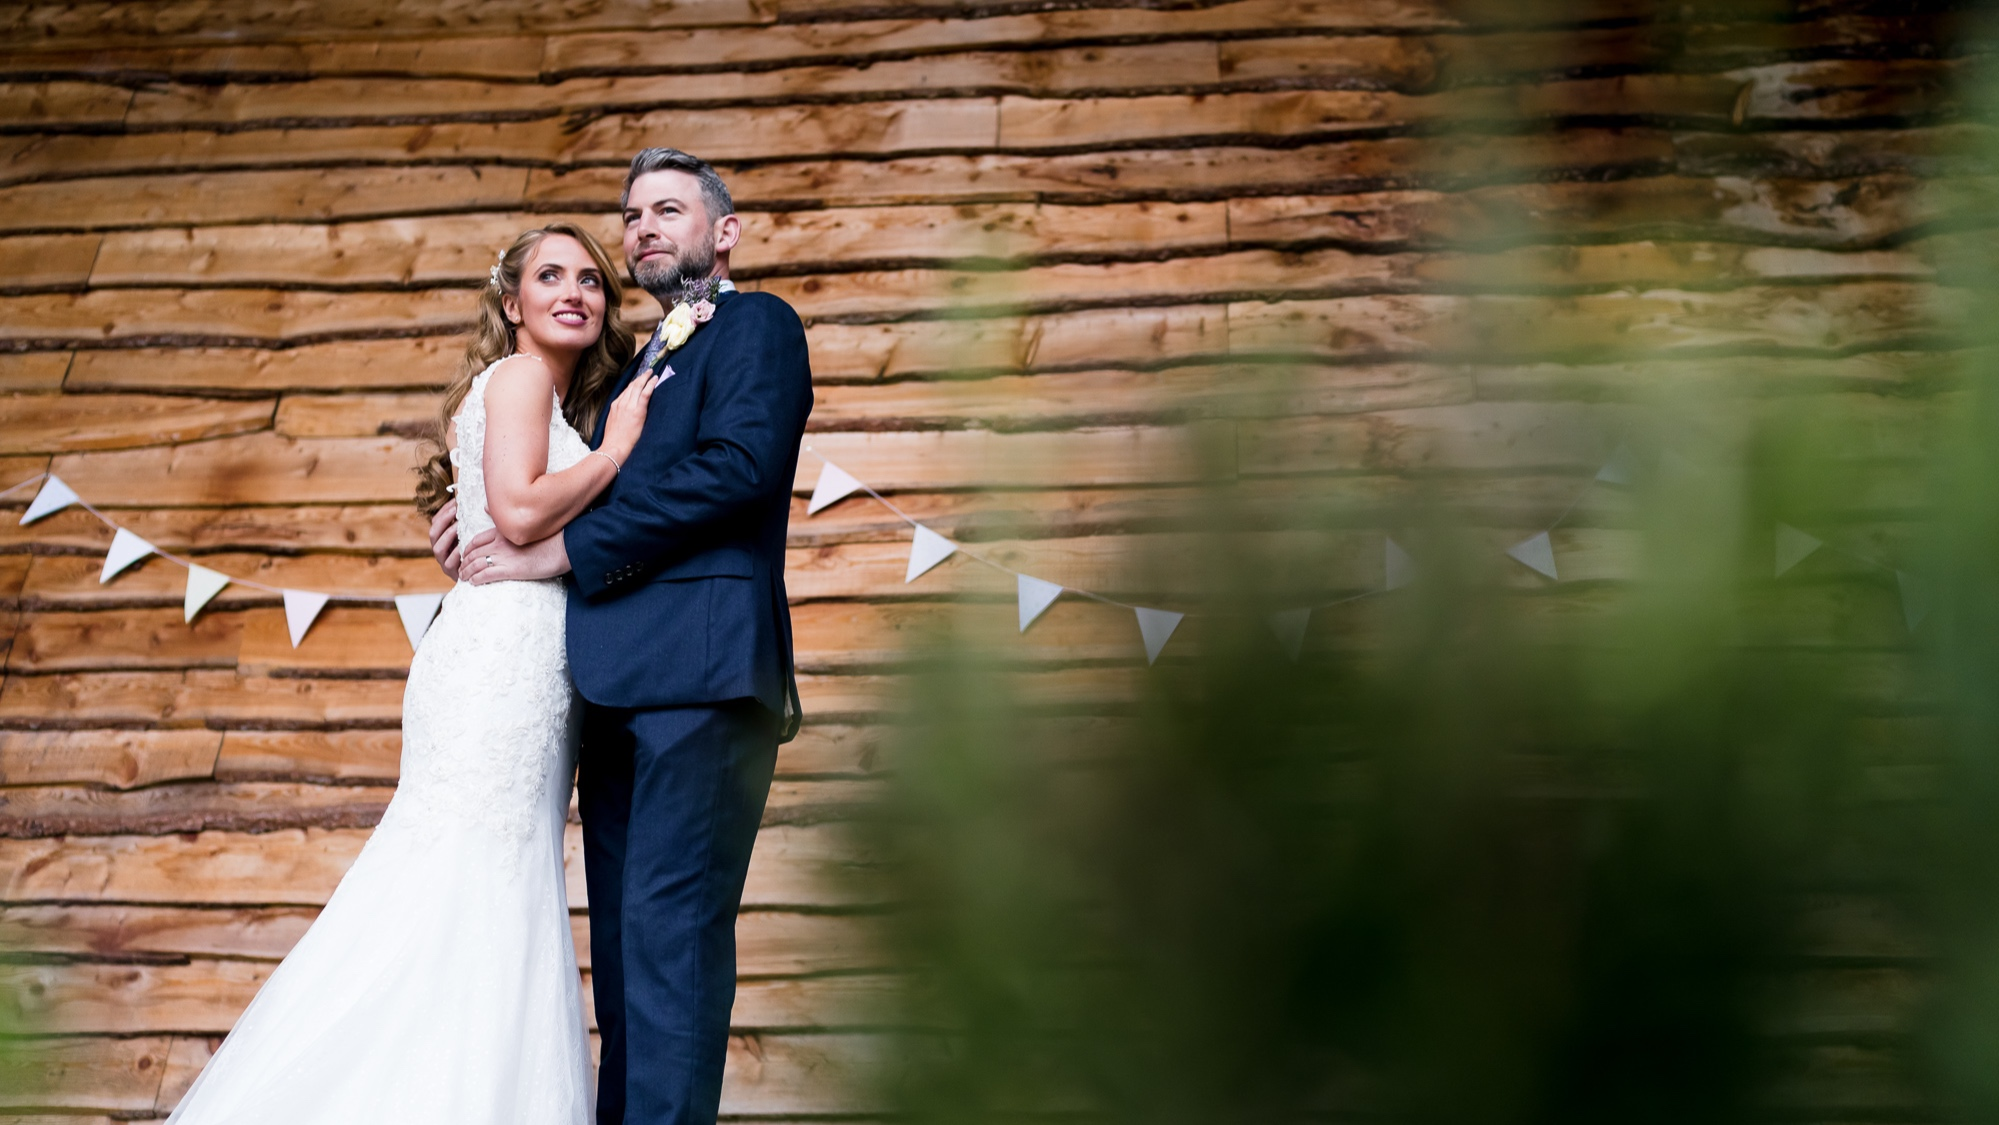 Tower+Hill+Barn+Wedding+Photographer+based+in+north+west+england+%282+of+7%29.jpg